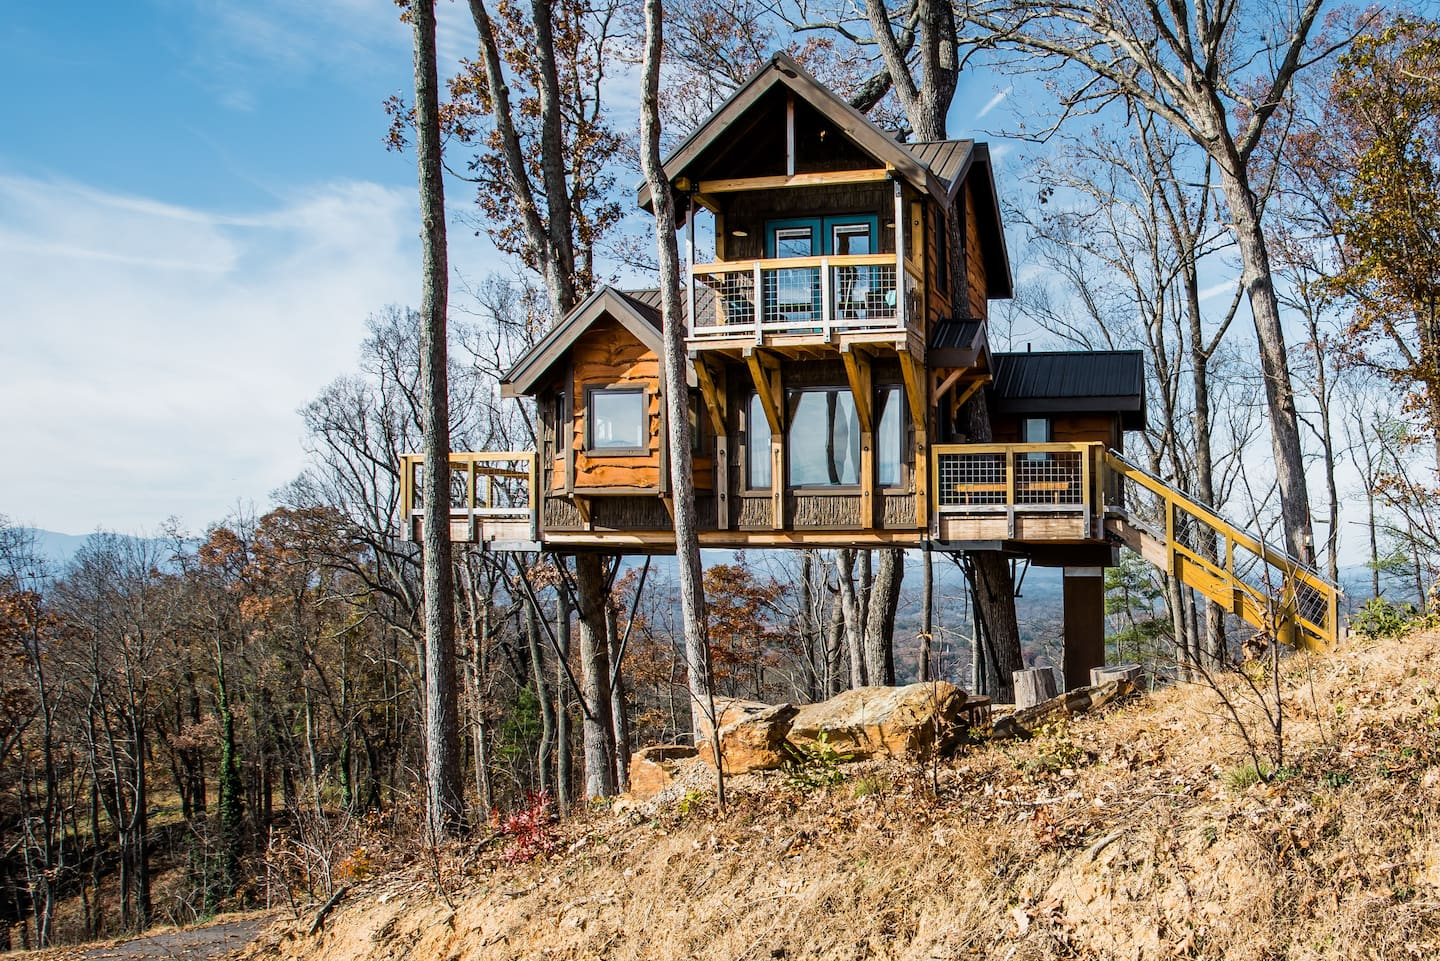 Treehouse Airbnb in Asheville